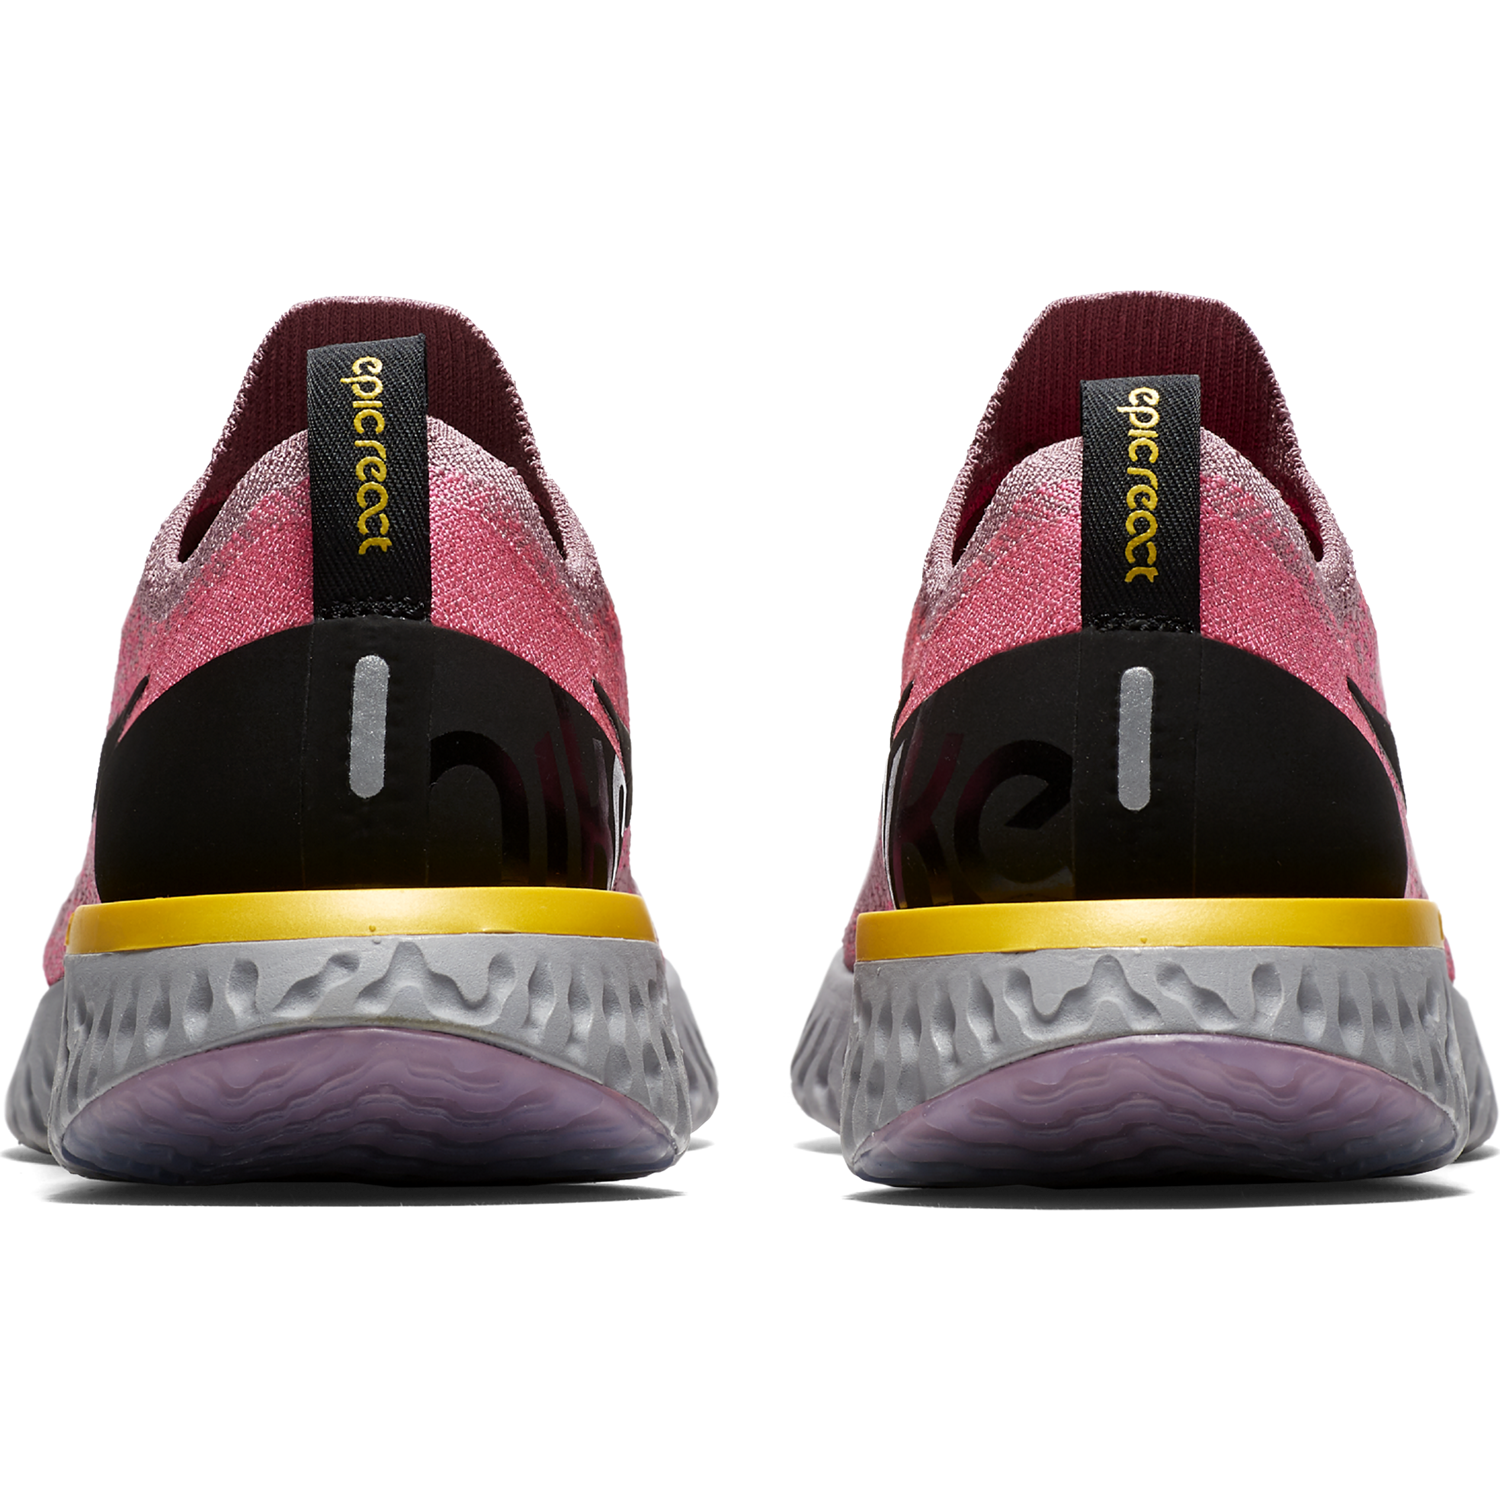 c34d3dc26874 ... buy womens epic react flyknit running shoe plum dust black pink blast  amarillo. nike 8603d